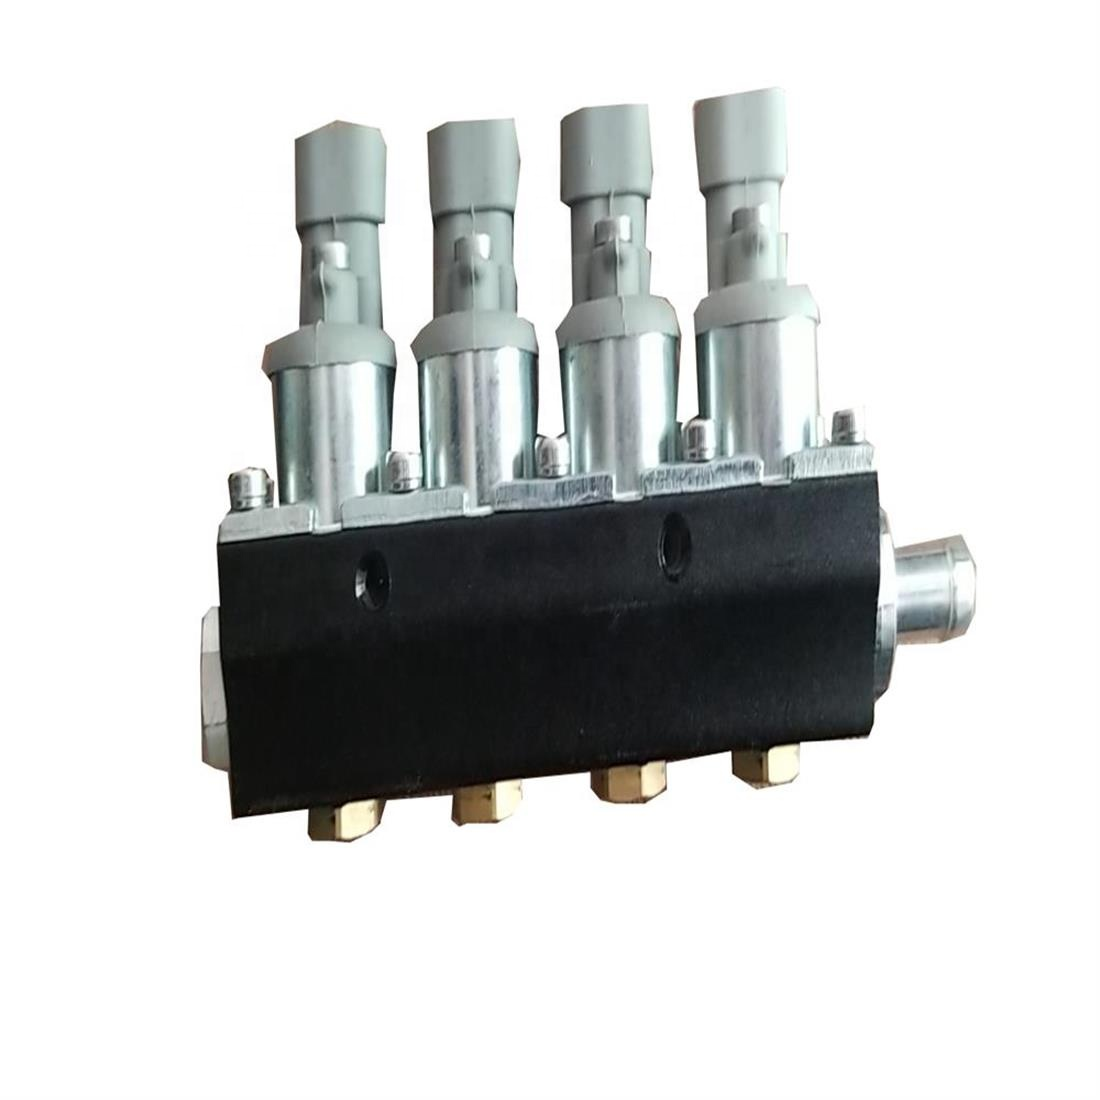 DC12V 2 Ohm <strong>LPG</strong> 4 Cylinder Autogas RAIL IG7 Dakota Injector